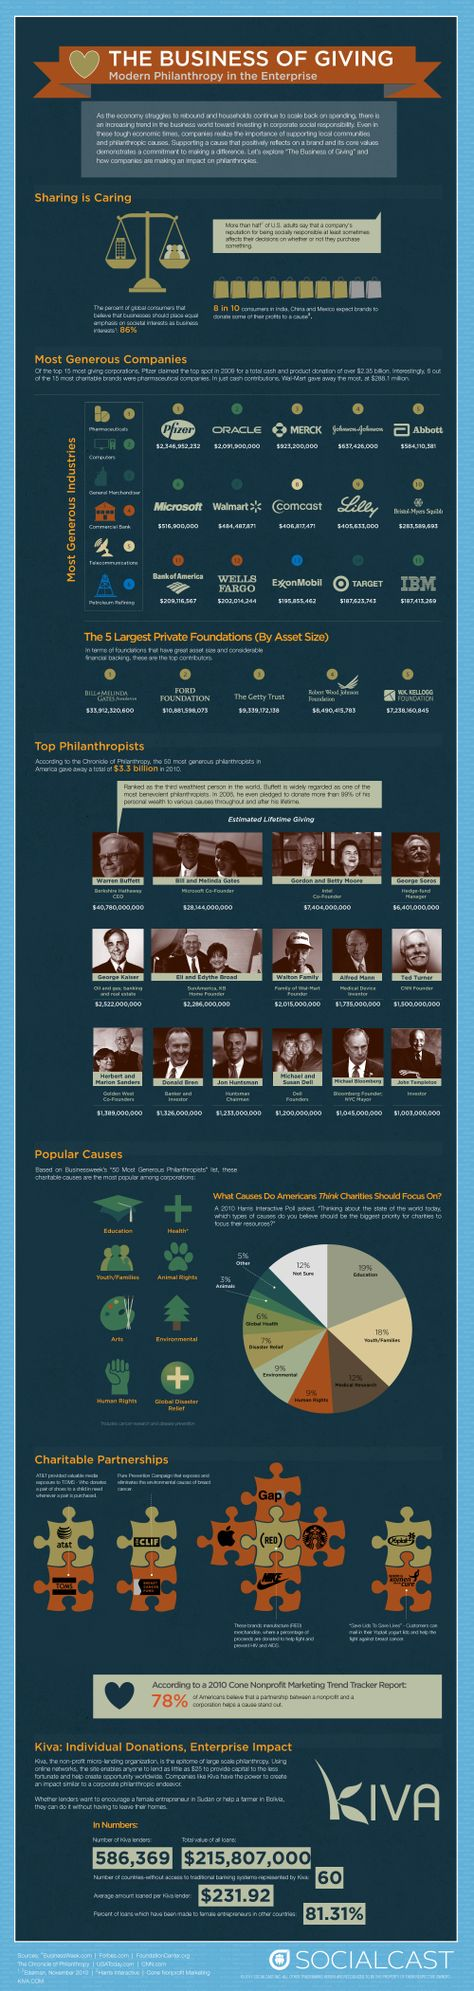 What is the State of Social Responsibility and Corporate Giving? #infographic